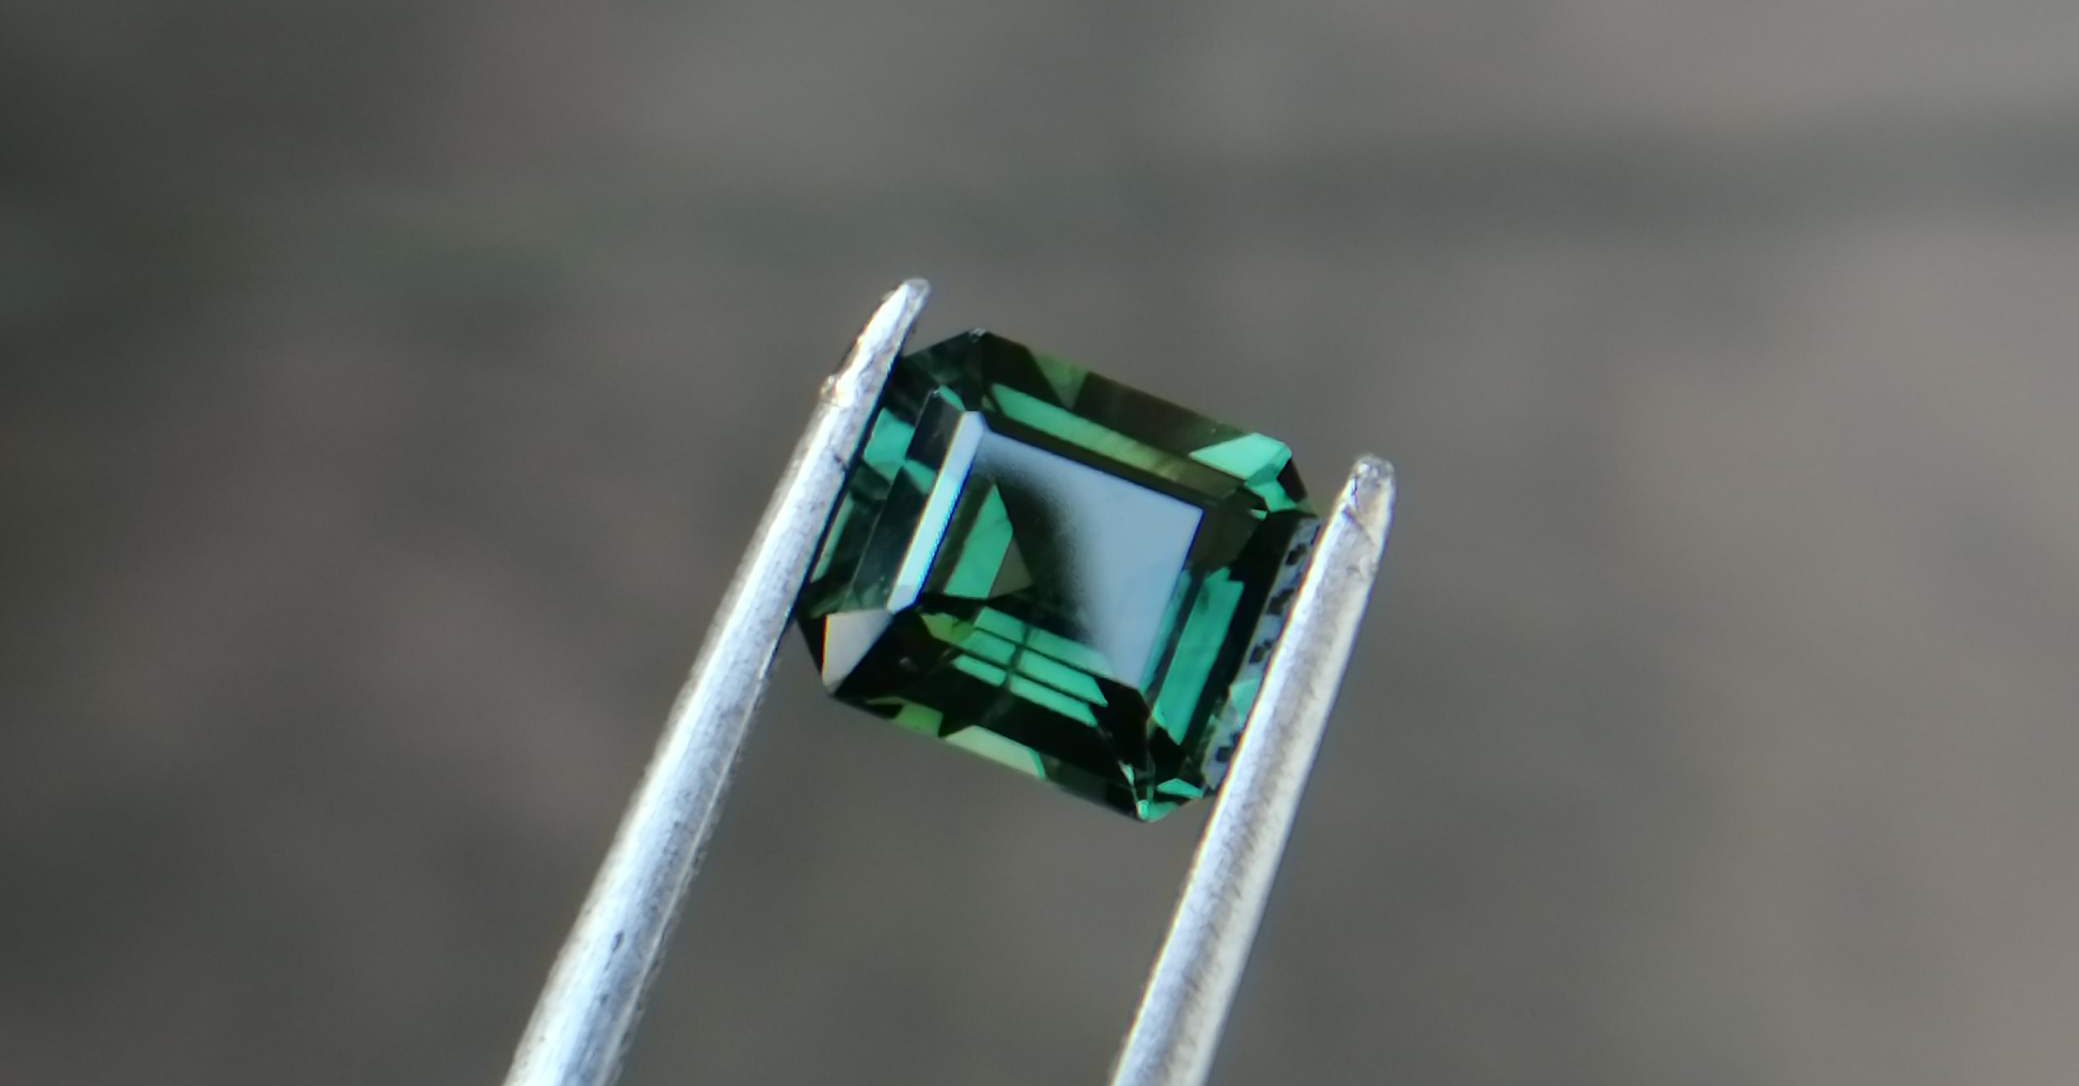 """Natural Green Sapphire Colour : Green Shape : Octagon Weight : 1.52 CTS Dimension : 6.8 x 6.0 x 3.7 mm Treatment : Unheated Clarity : VS • CSL - Colored Stone Laboratory Certified ( GIA Alumina Association Member ) • CSL Memo No : C25A834CB509 Sapphire is a precious gemstone, a variety of the mineral corundum, consisting of aluminum oxide with trace amounts of elements such as iron, titanium, chromium, copper, or magnesium. Sapphire deposits are found inEastern Australia,Thailand,Sri Lanka,China, Vietnam, Madagascar, Greenland, East Africa, and inNorth Americain mostly inMontana. Madagascar, Sri Lanka, and Kashmir produce large quantities of fine quality Sapphires for the world market. Sapphires are mined fromalluvialdeposits or from primary underground workings. Blue Sapphire and Ruby are the most popular Gemstone in Corundum Family. also, Orangy Pink Sapphire is called Padparadscha. The name Drive's from the Sinhalese word """"padmaraga"""" """" පද්මරාග"""", meaning lotus blossom, as the stone is of a similar color to the lotus blossom. Bi-Color Sapphire from DanuGroup Collection Also, Sapphire can be found as parti-color, bi-color or fancy color. Australia is a main parti-color Sapphire producer. White Sapphire also, White sapphire is a very popular stone to wear instead of Diamond as a 3rd hardness gemstone after diamond ( moissanite hardness is 9.5). Various colors of star sapphires Astar sapphireis a type of sapphire that exhibits a star-like phenomenon known asasterism. Also, A rare variety of natural sapphire, known as color-change sapphire, exhibits different colors in a different light. Sapphires can be treated by several methods to enhance and improve their clarity and color. A common method is done by heating the sapphires in furnaces to temperatures between 500 and 1,850°C for several hours, or by heating in a nitrogen-deficient atmosphere oven for 1 week or more. Geuda is a form of the mineralcorundum. Geuda is found primarily inSri Lanka. It's a semitransparent a"""